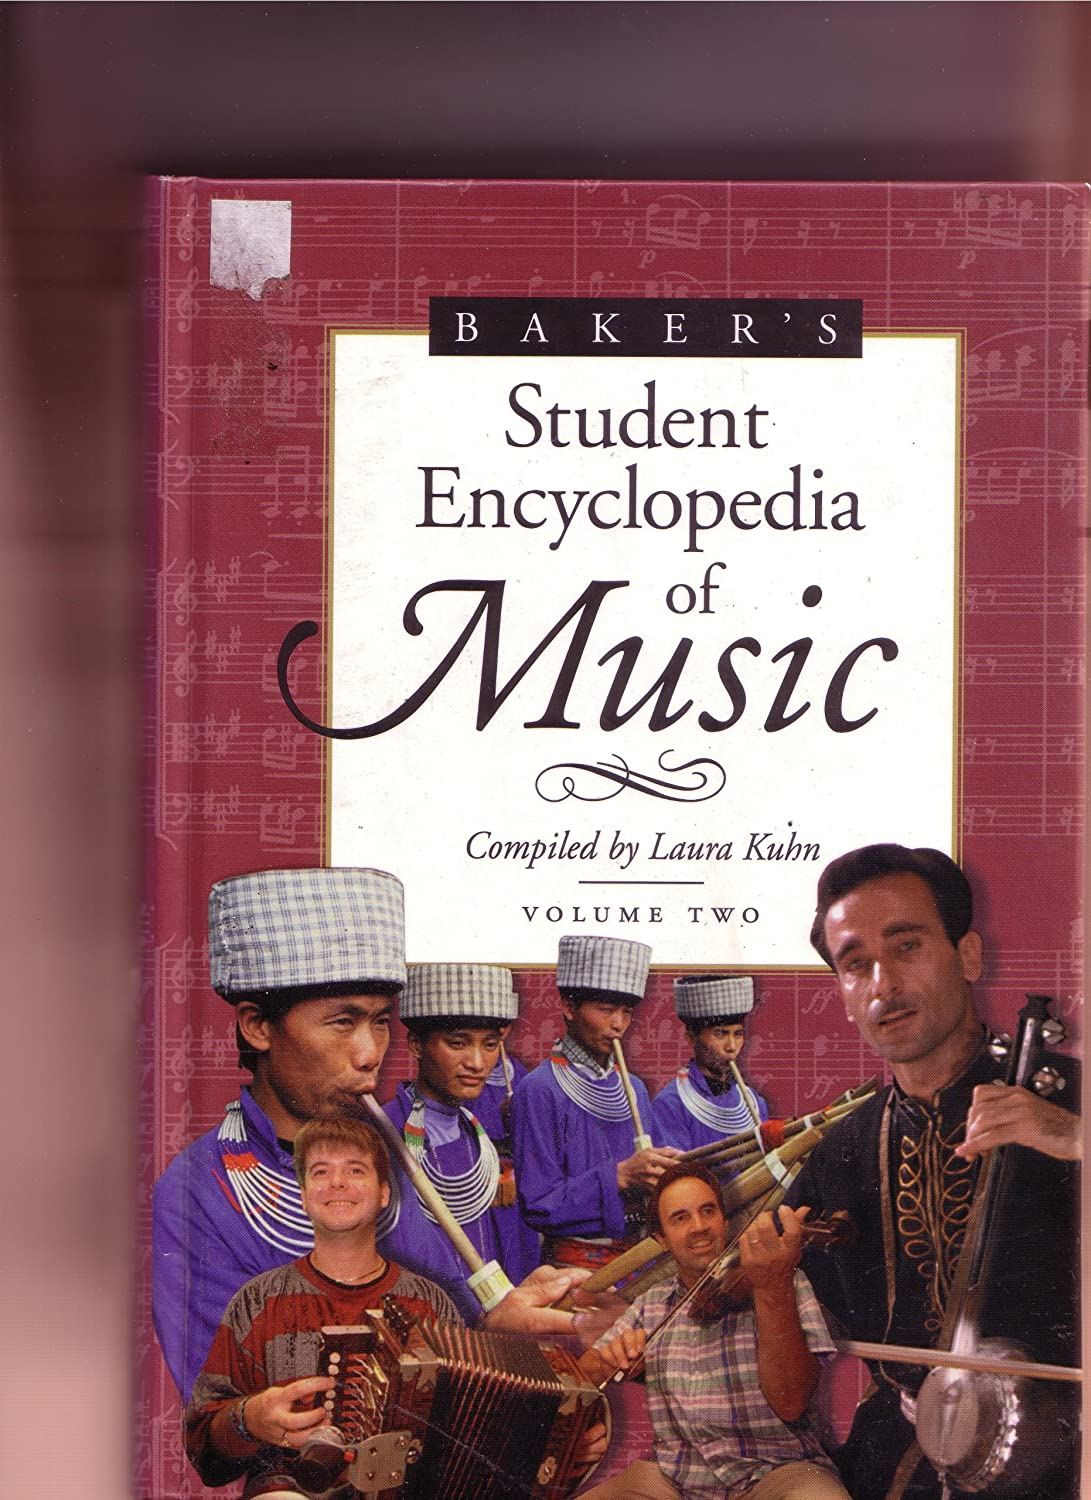 Amazon.com : Baker's Student Dictionary of Music: Compiled by Laura Kuhn: 2  : Book : Everything Else